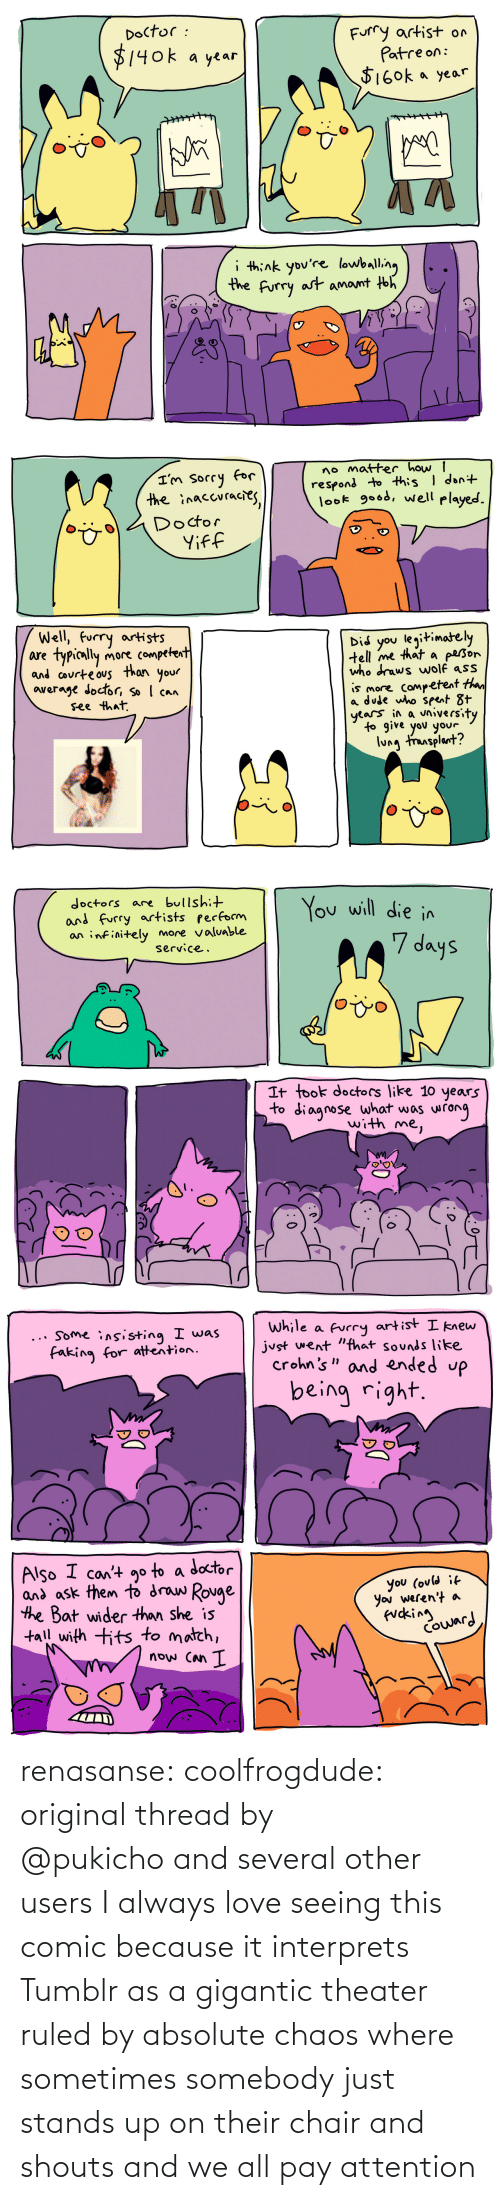 gigantic: renasanse:  coolfrogdude: original thread by @pukichoand several other users I always love seeing this comic because it interprets Tumblr as a gigantic theater ruled by absolute chaos where sometimes somebody just stands up on their chair and shouts and we all pay attention